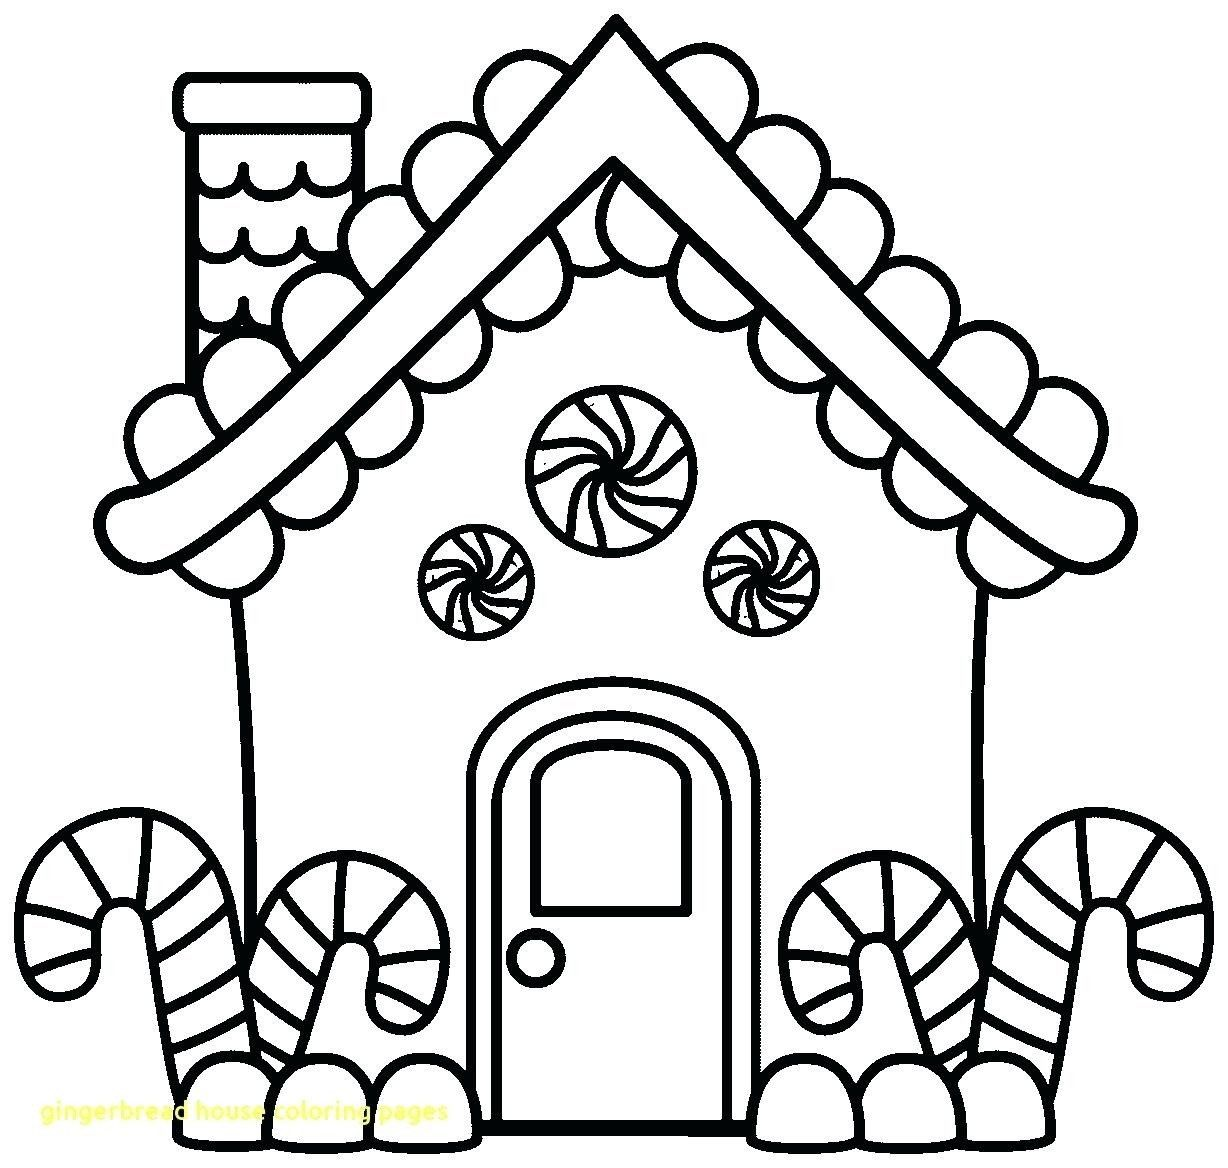 Gingerbread House Coloring Page New Blank Gingerbread